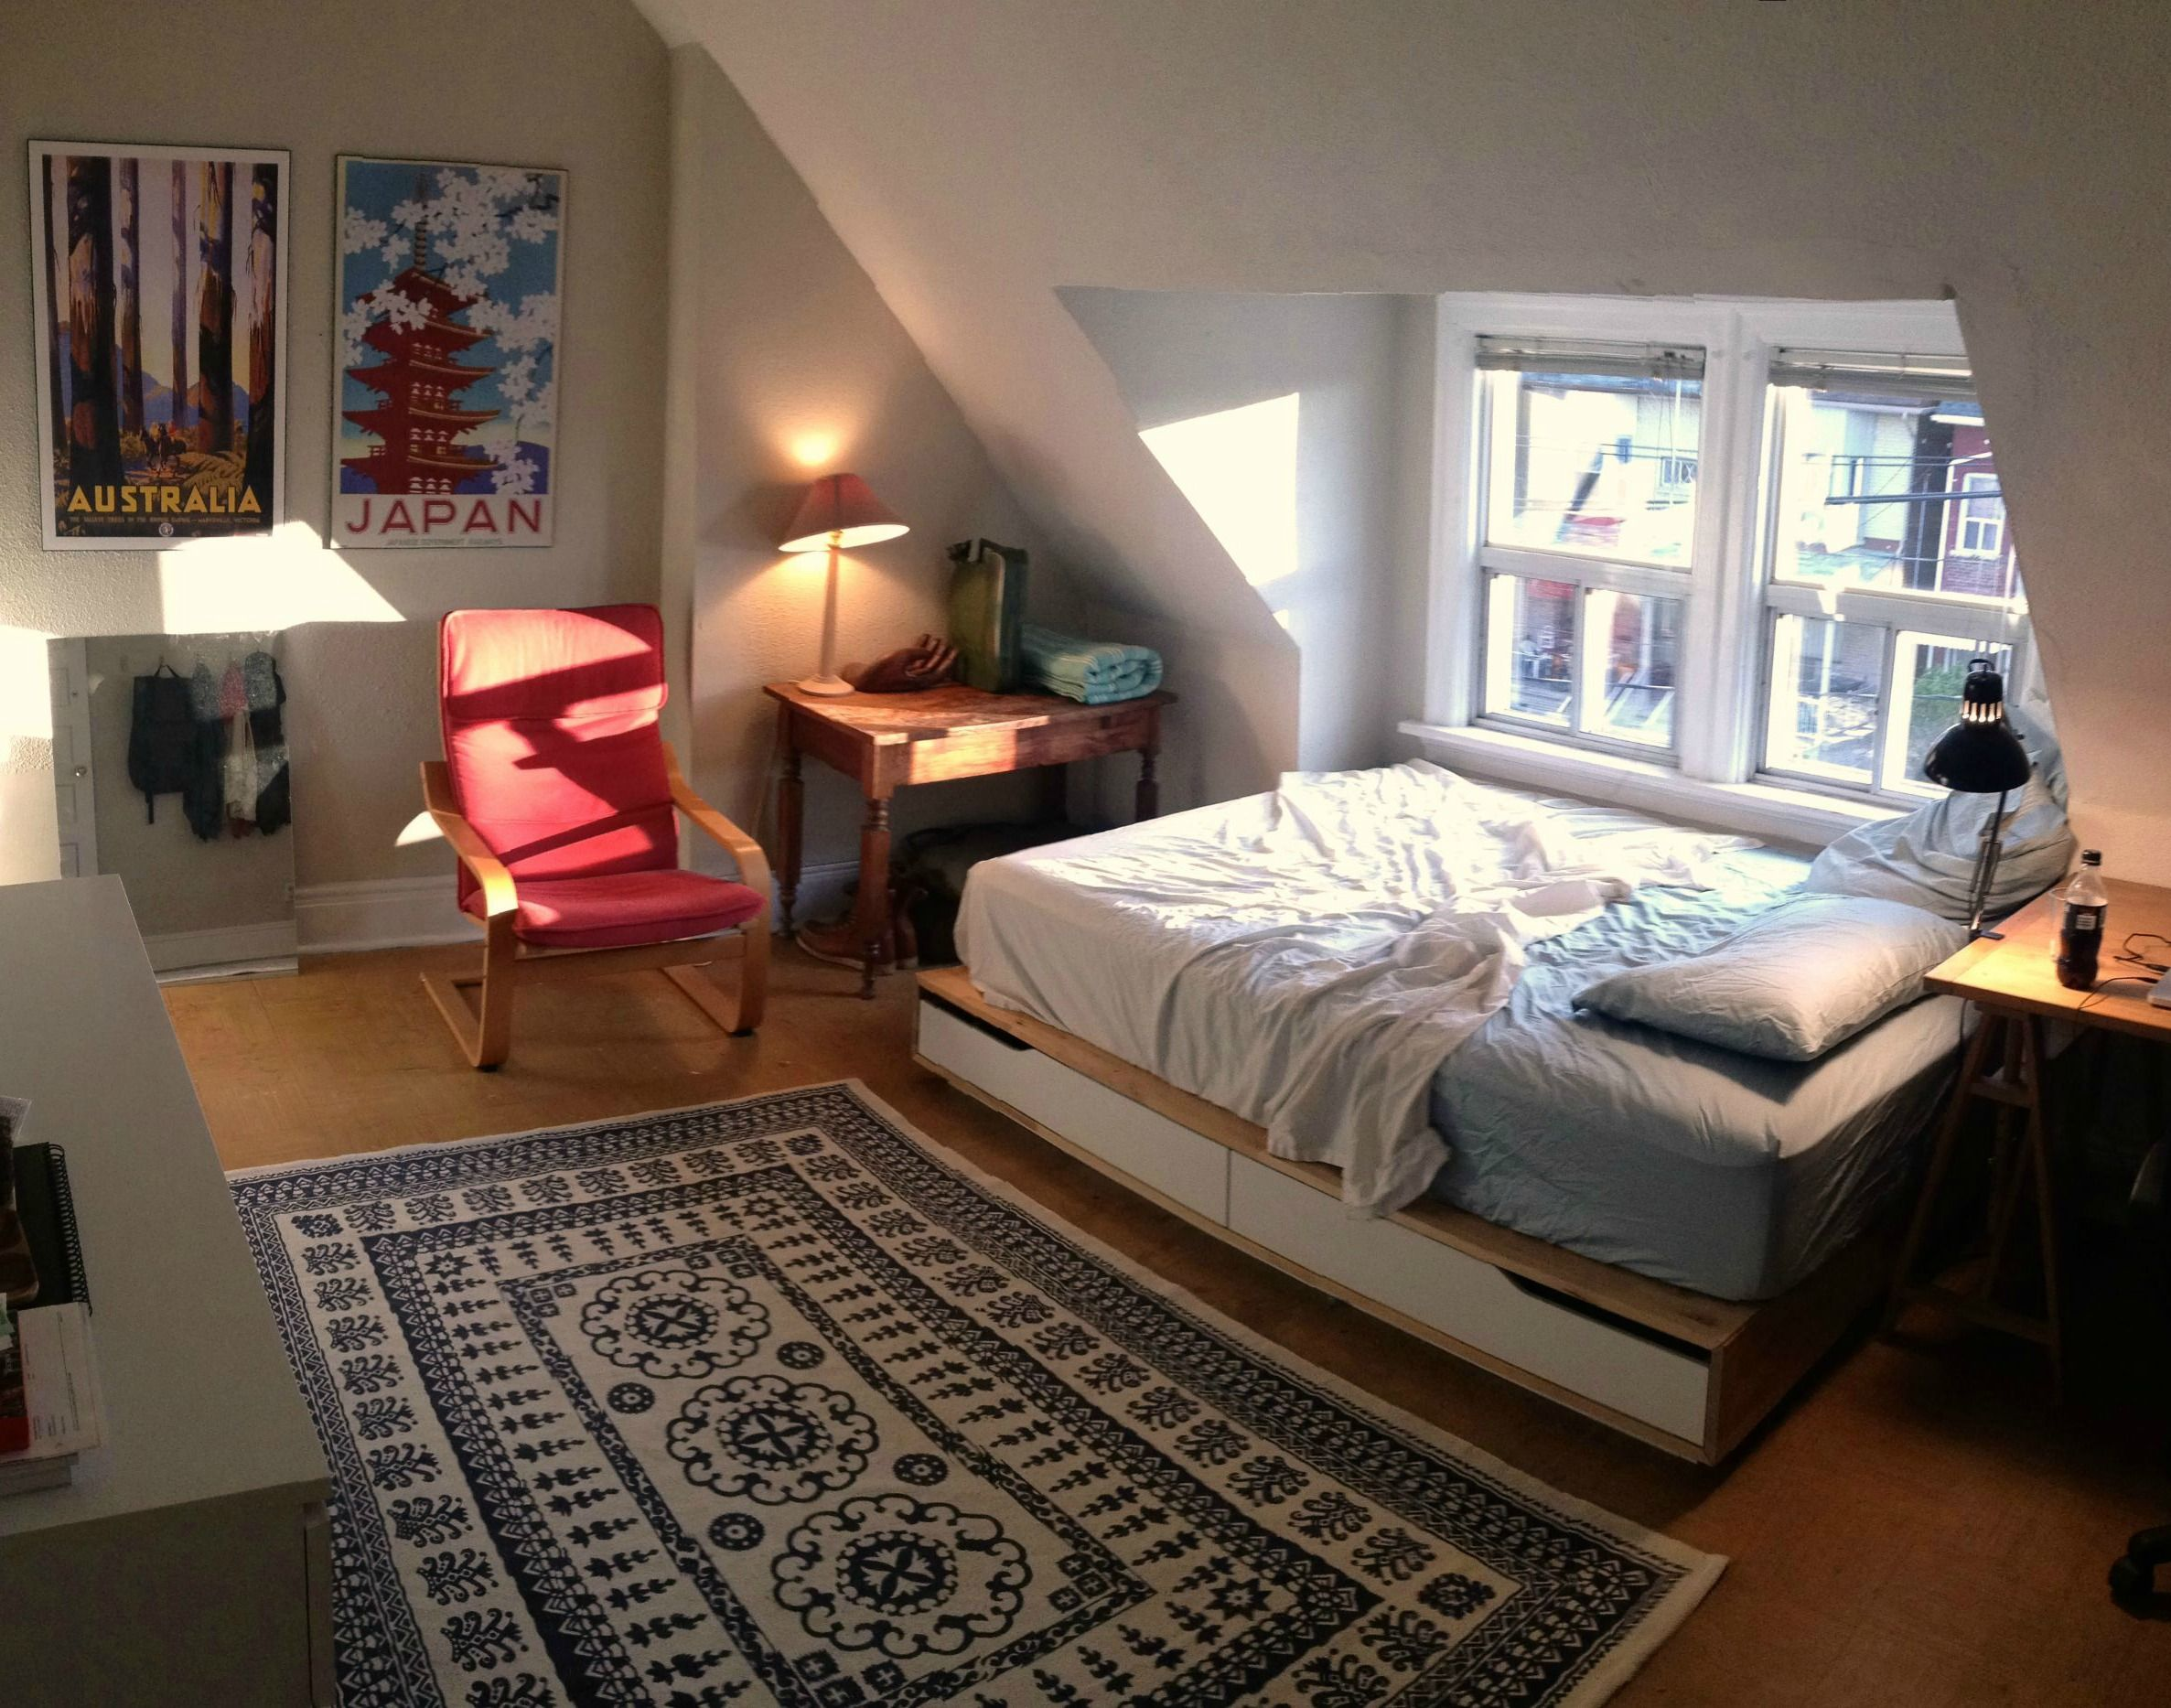 90 Cozy Rooms You ll Never Want To Leave   For the Home   Pinterest     My cozy student apartment